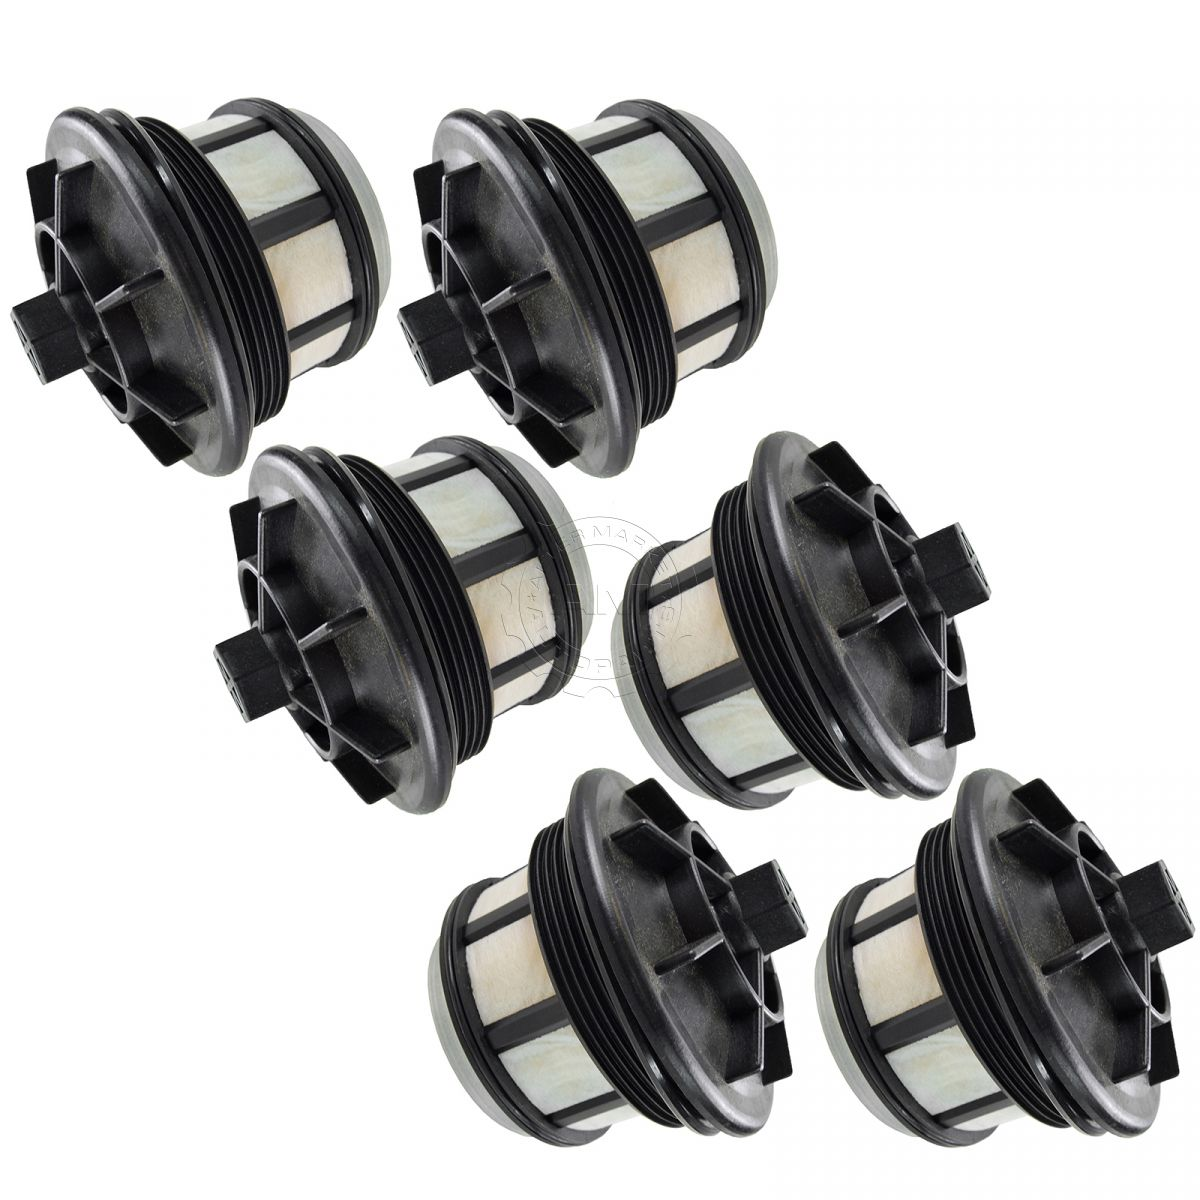 fuel filter set of 6 for ford f250  [ 1200 x 1200 Pixel ]